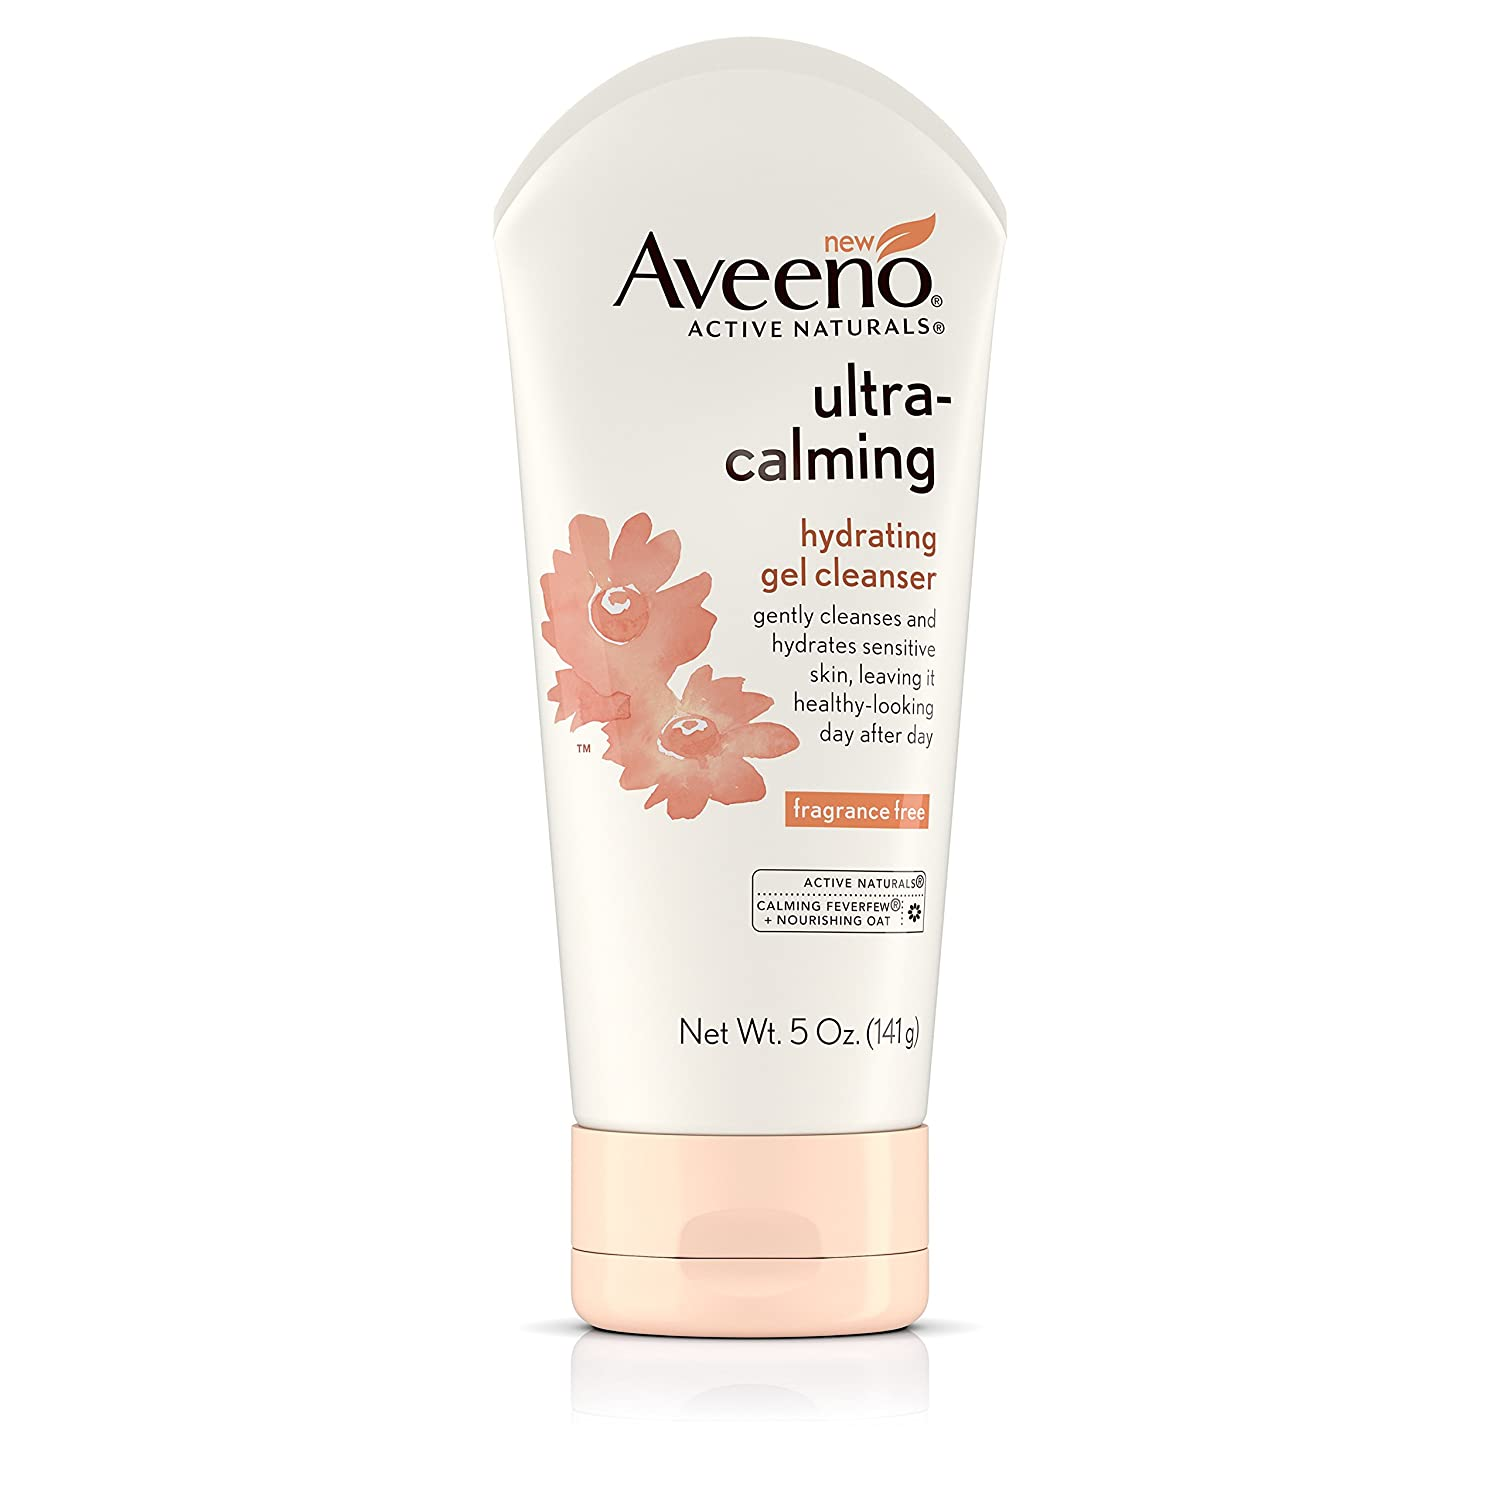 Aveeno Ultra-Calming Hydrating Gel Facial Cleanser for Dry and Sensitive Skin, 5 oz